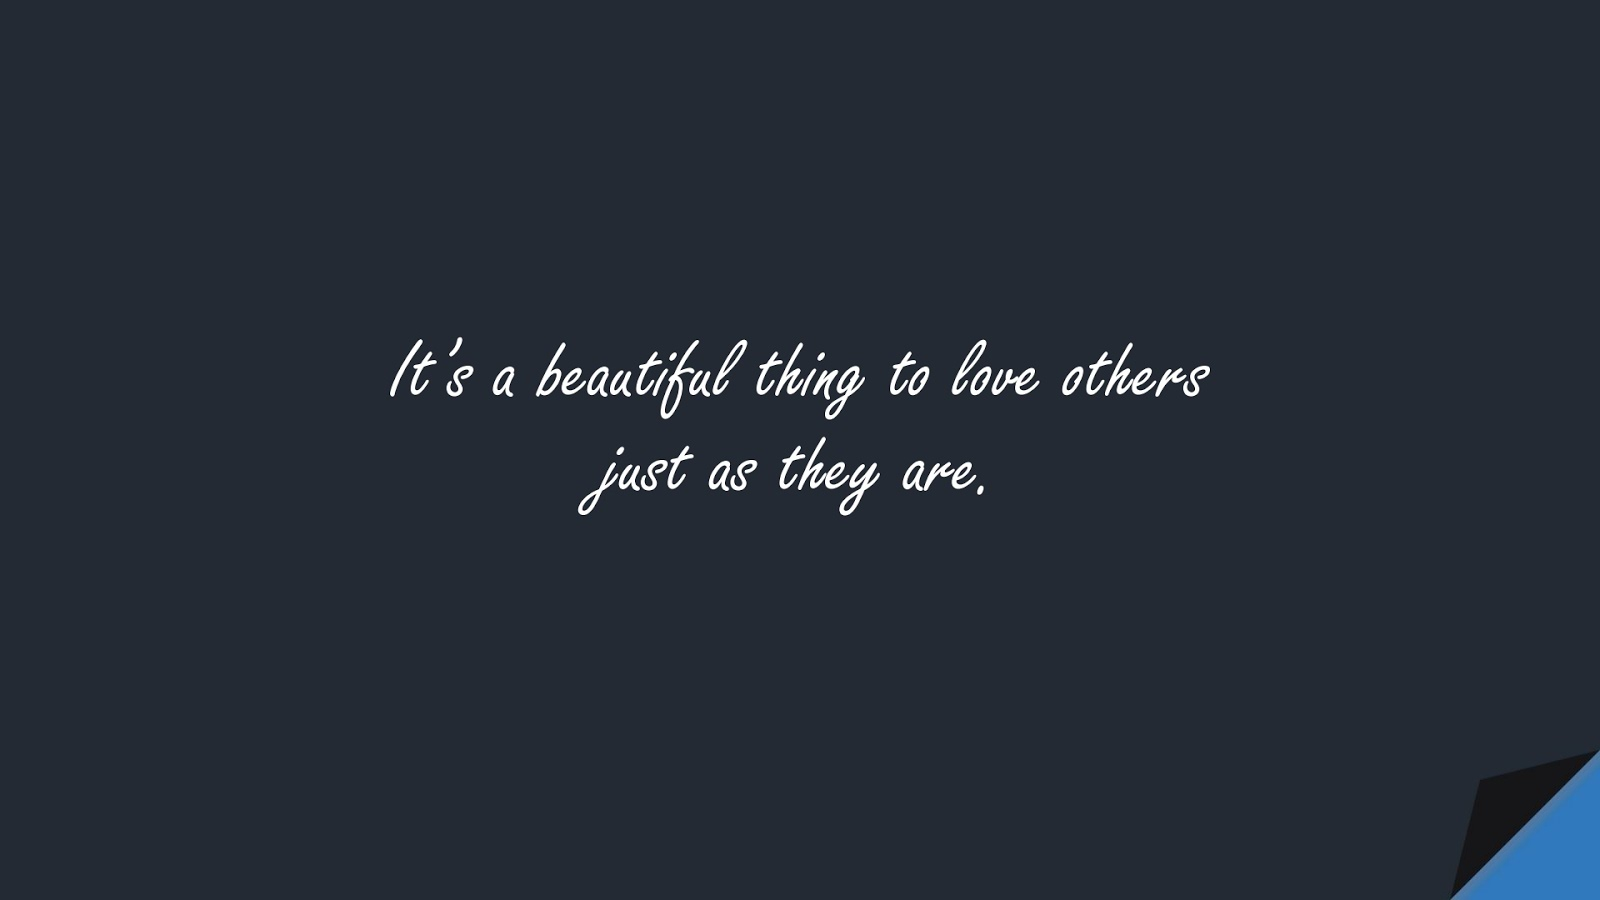 It's a beautiful thing to love others just as they are.FALSE